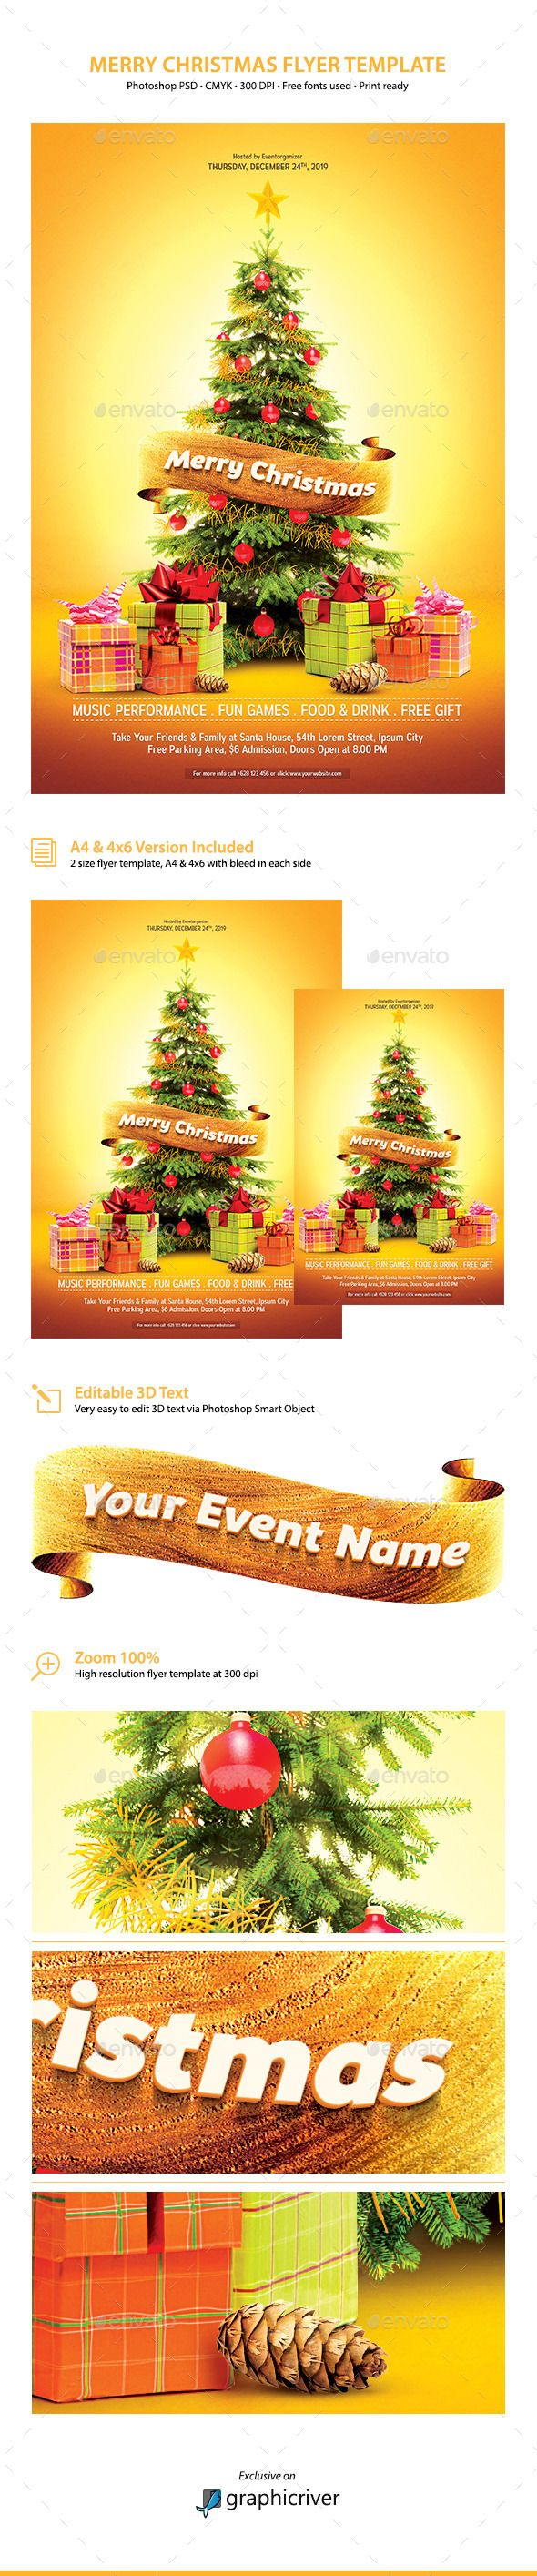 17 best ideas about christmas flyer christmas merry christmas flyer template